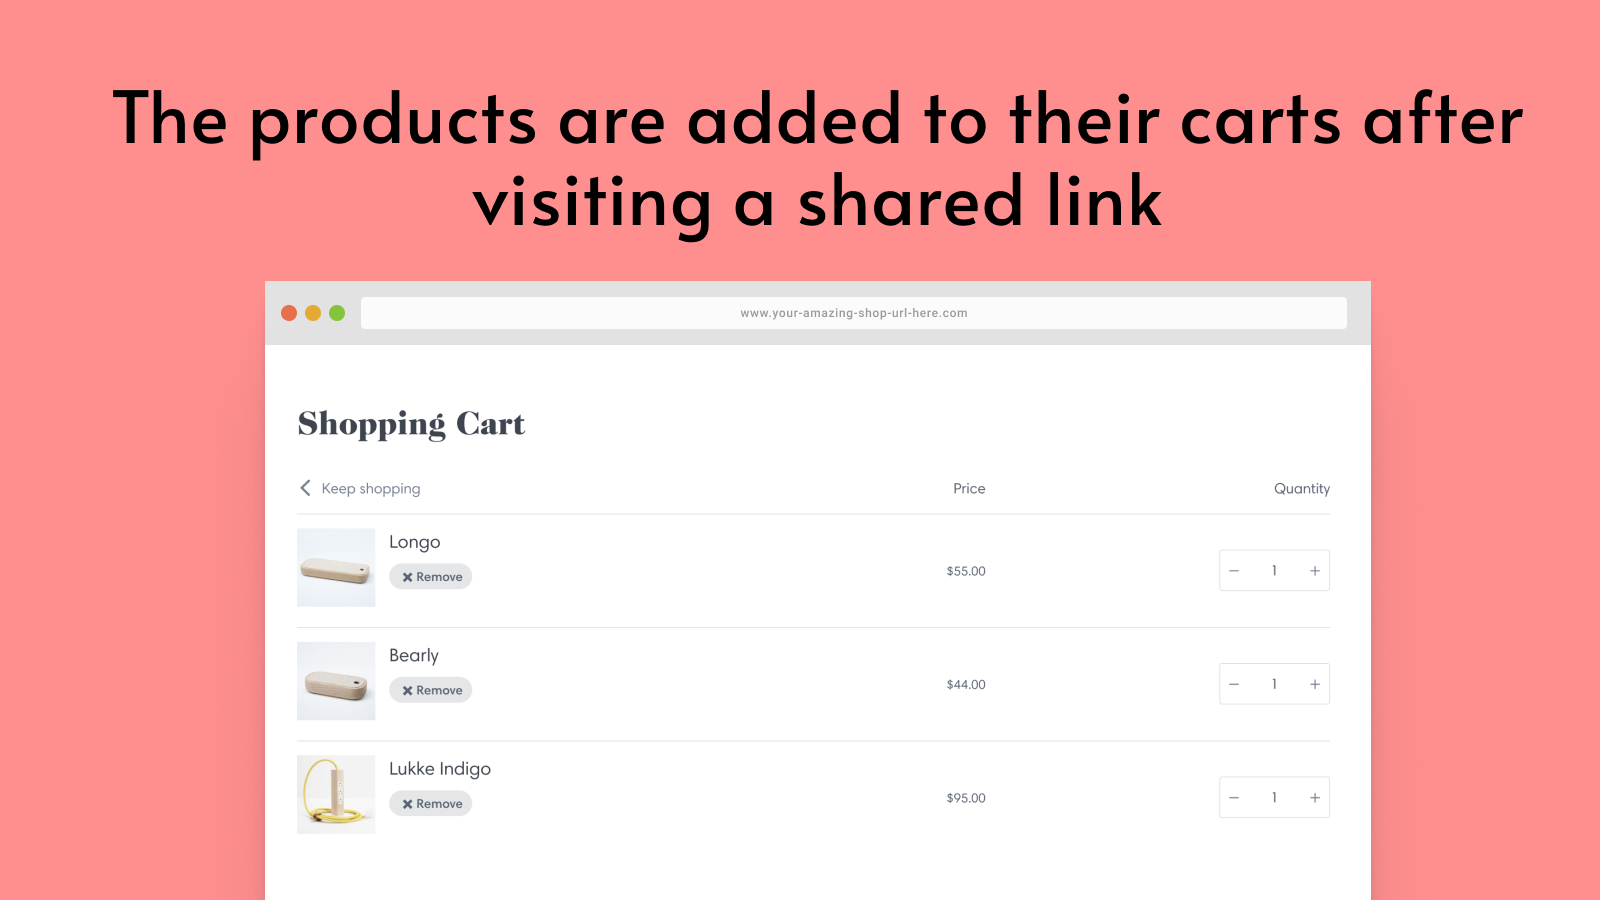 Anyone opening the link, will add the products to their cart.